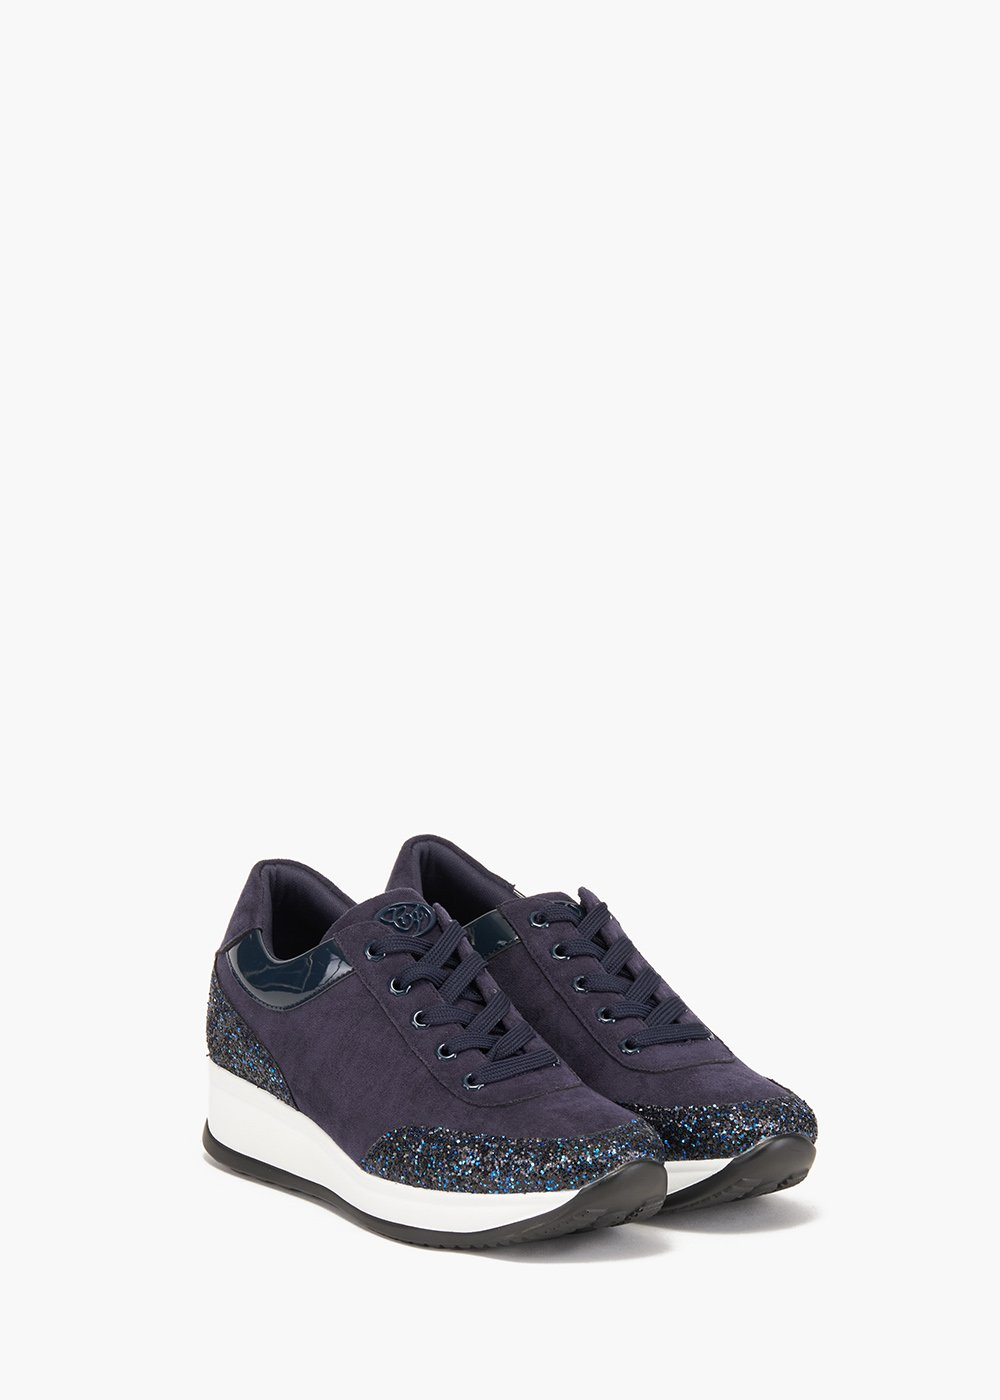 Gym shoes Stay in eco suede and glitter decoration - Medium Blue - Woman